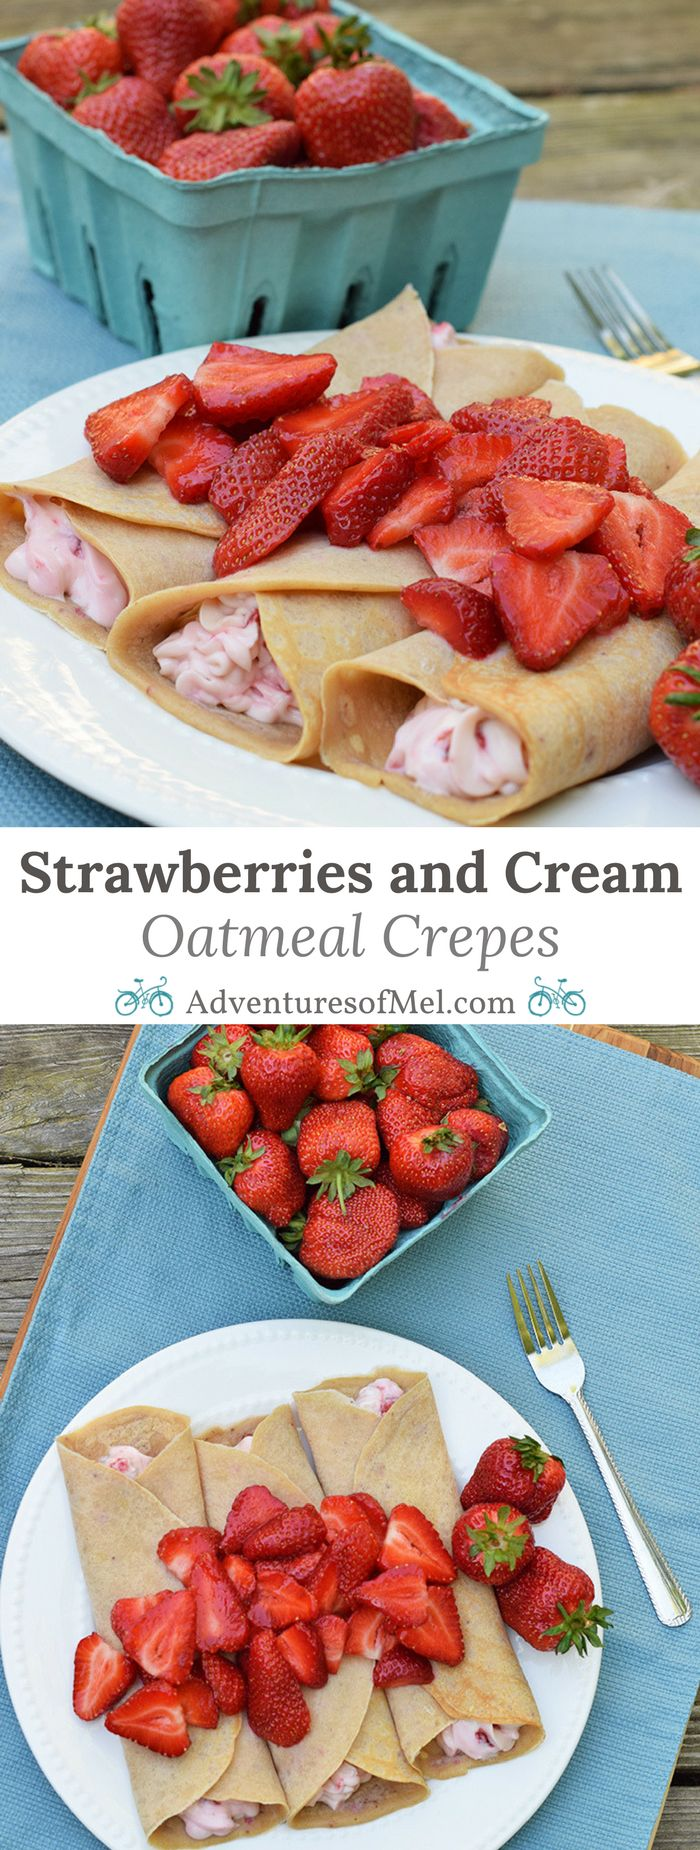 Homemade Sweet and Savory Strawberries and Cream Oatmeal Crepes, made with baby cereal, are so simple and easy to make, scrumptious too! Print the recipe for this breakfast and brunch favorite.